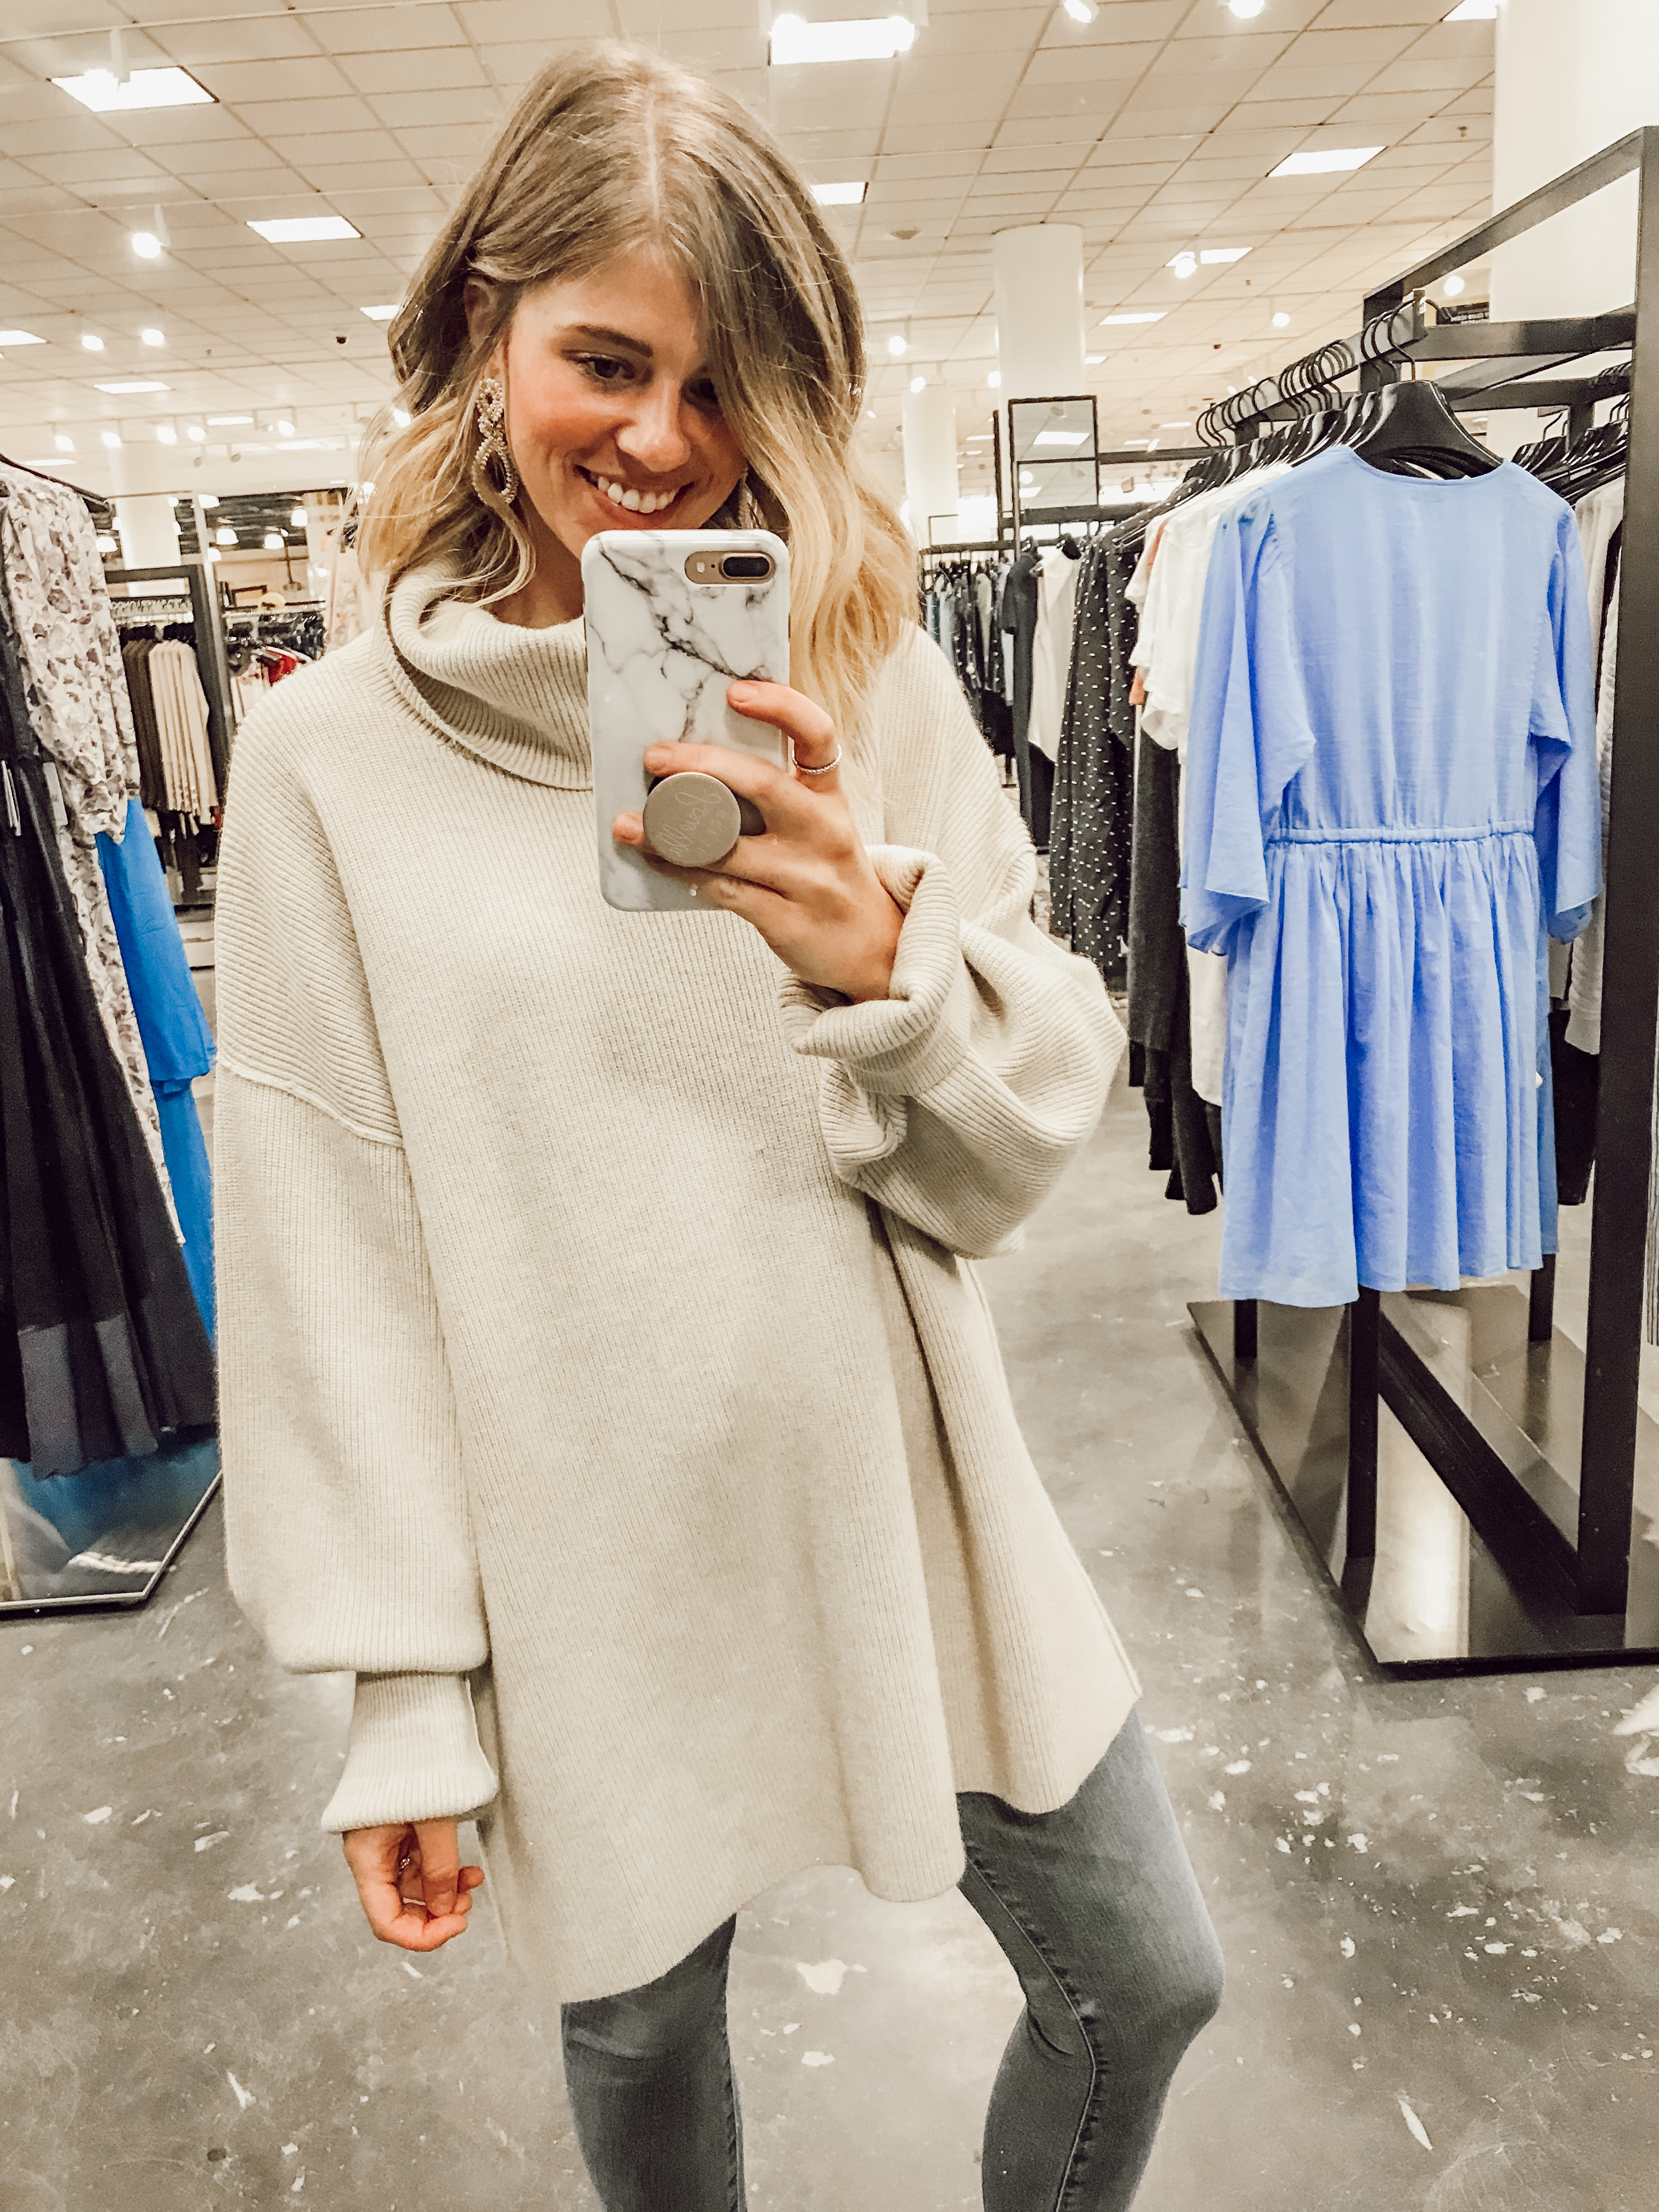 Free People Softly Structured Knit Tunic Sweater | 2019 Nordstrom Anniversary Fitting Room Session featured on Louella Reese Life & Style Blog